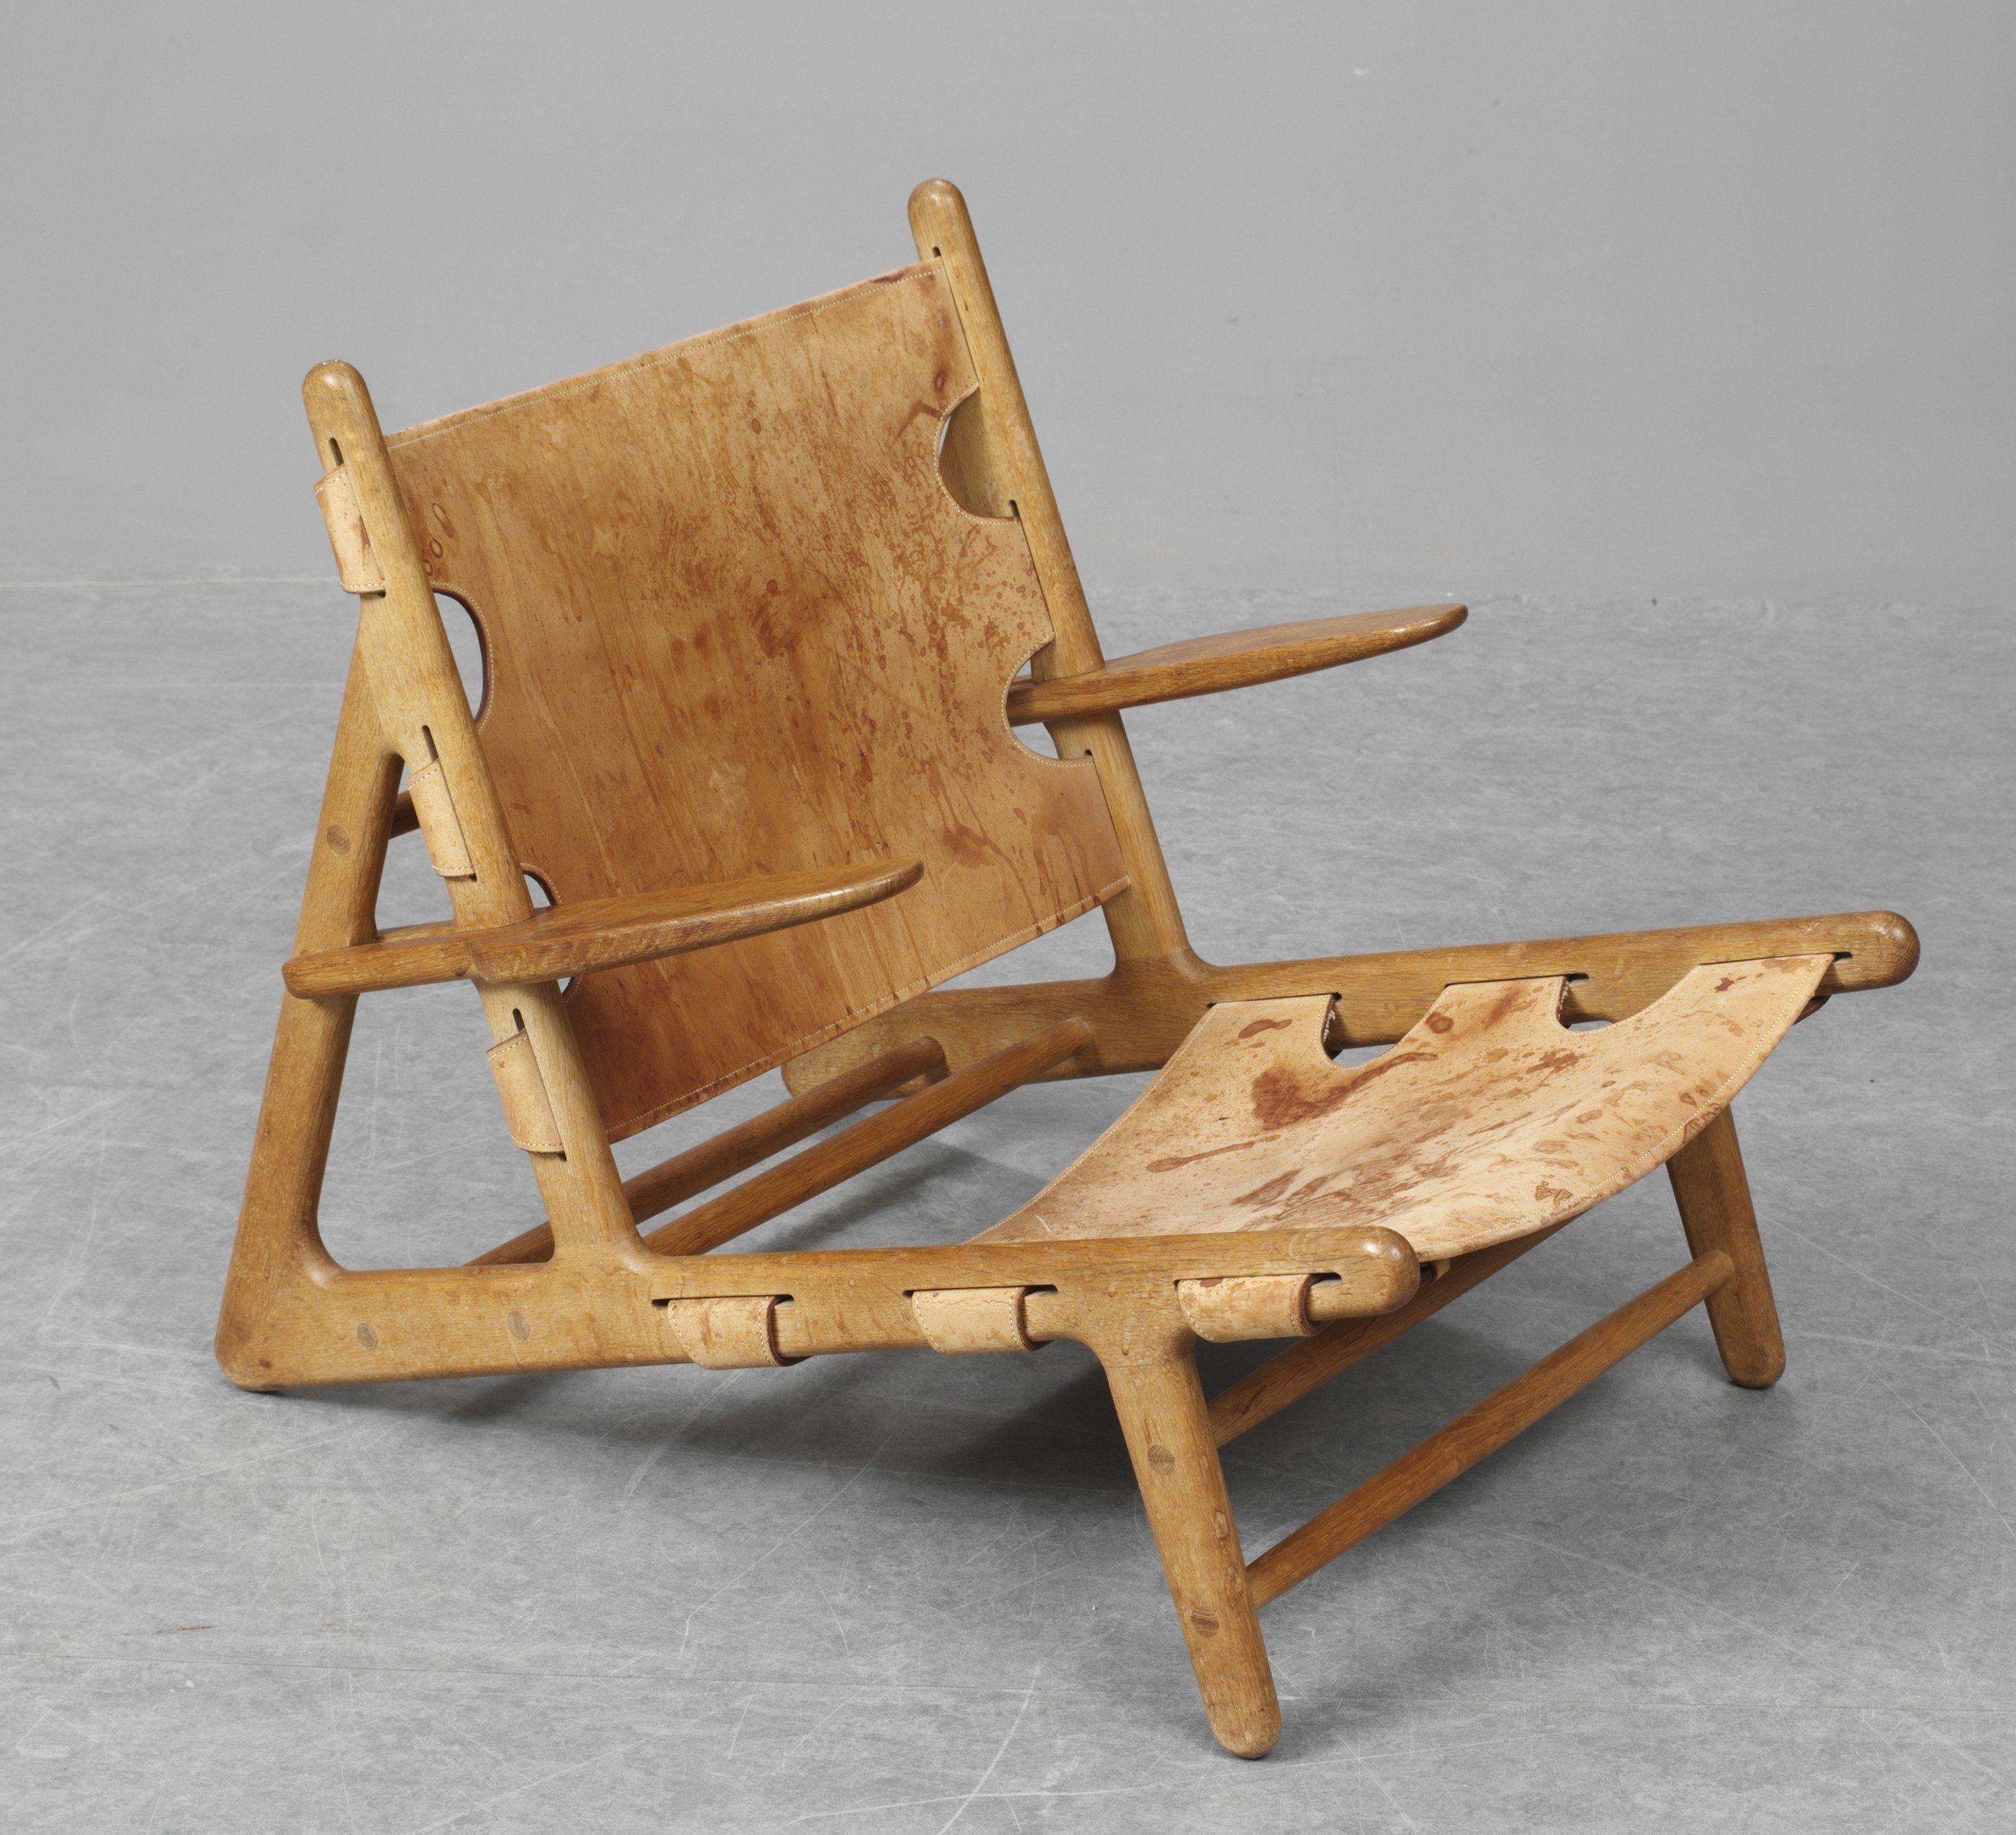 1950 hunting chair by B¸rge Mogensen made by Erhard Rasmussen